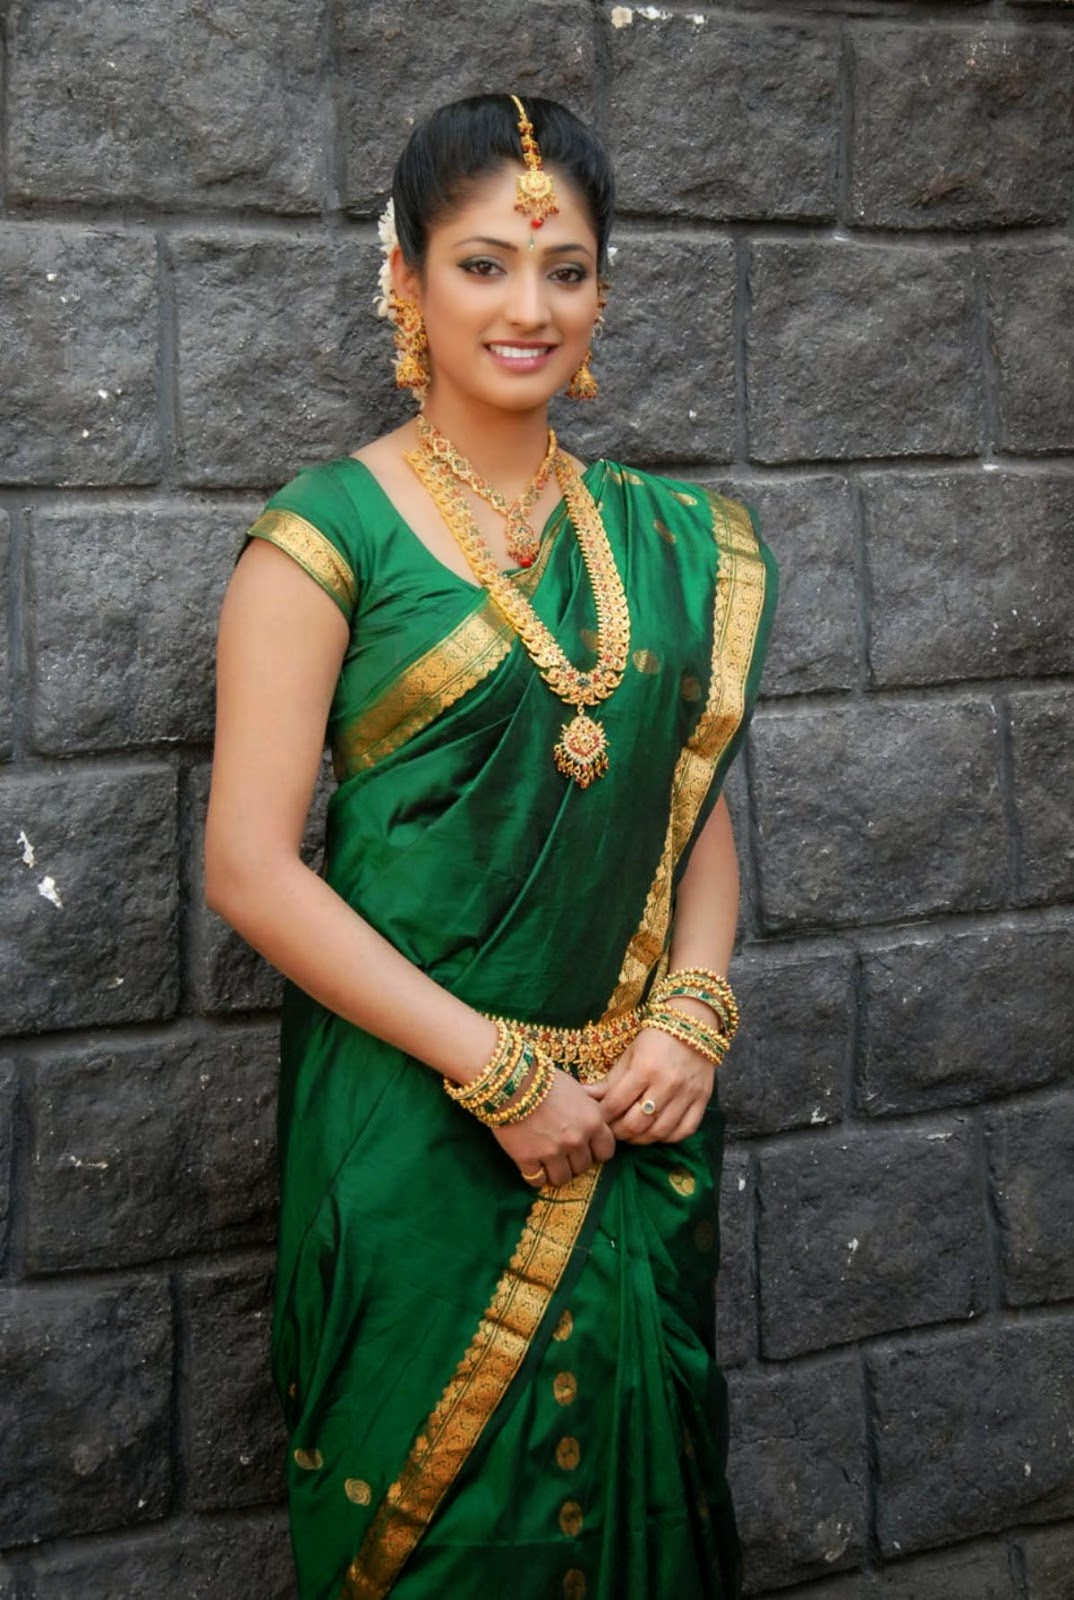 Actress Haripriya in Green Saree Photos | Englandiya